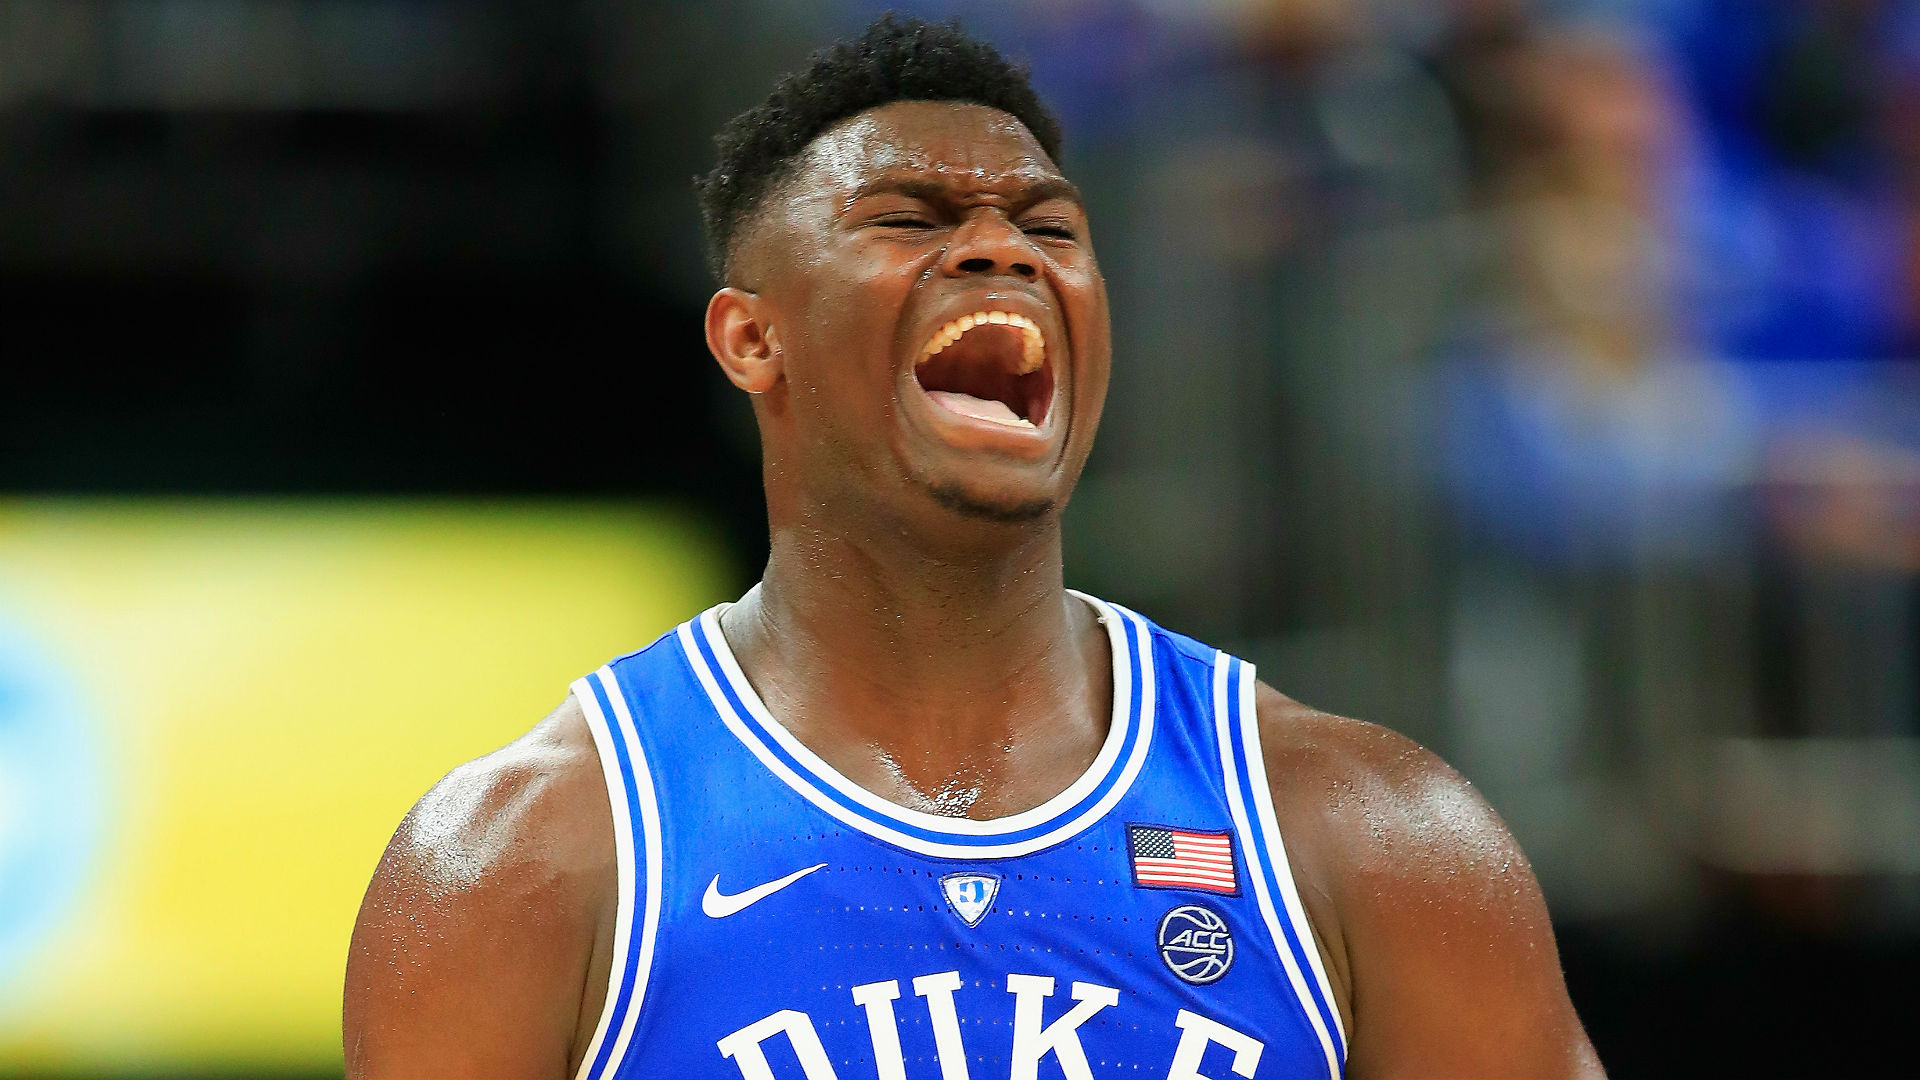 Duke-Virginia — and Zion Williamson — can silence some of season's maddening storylines